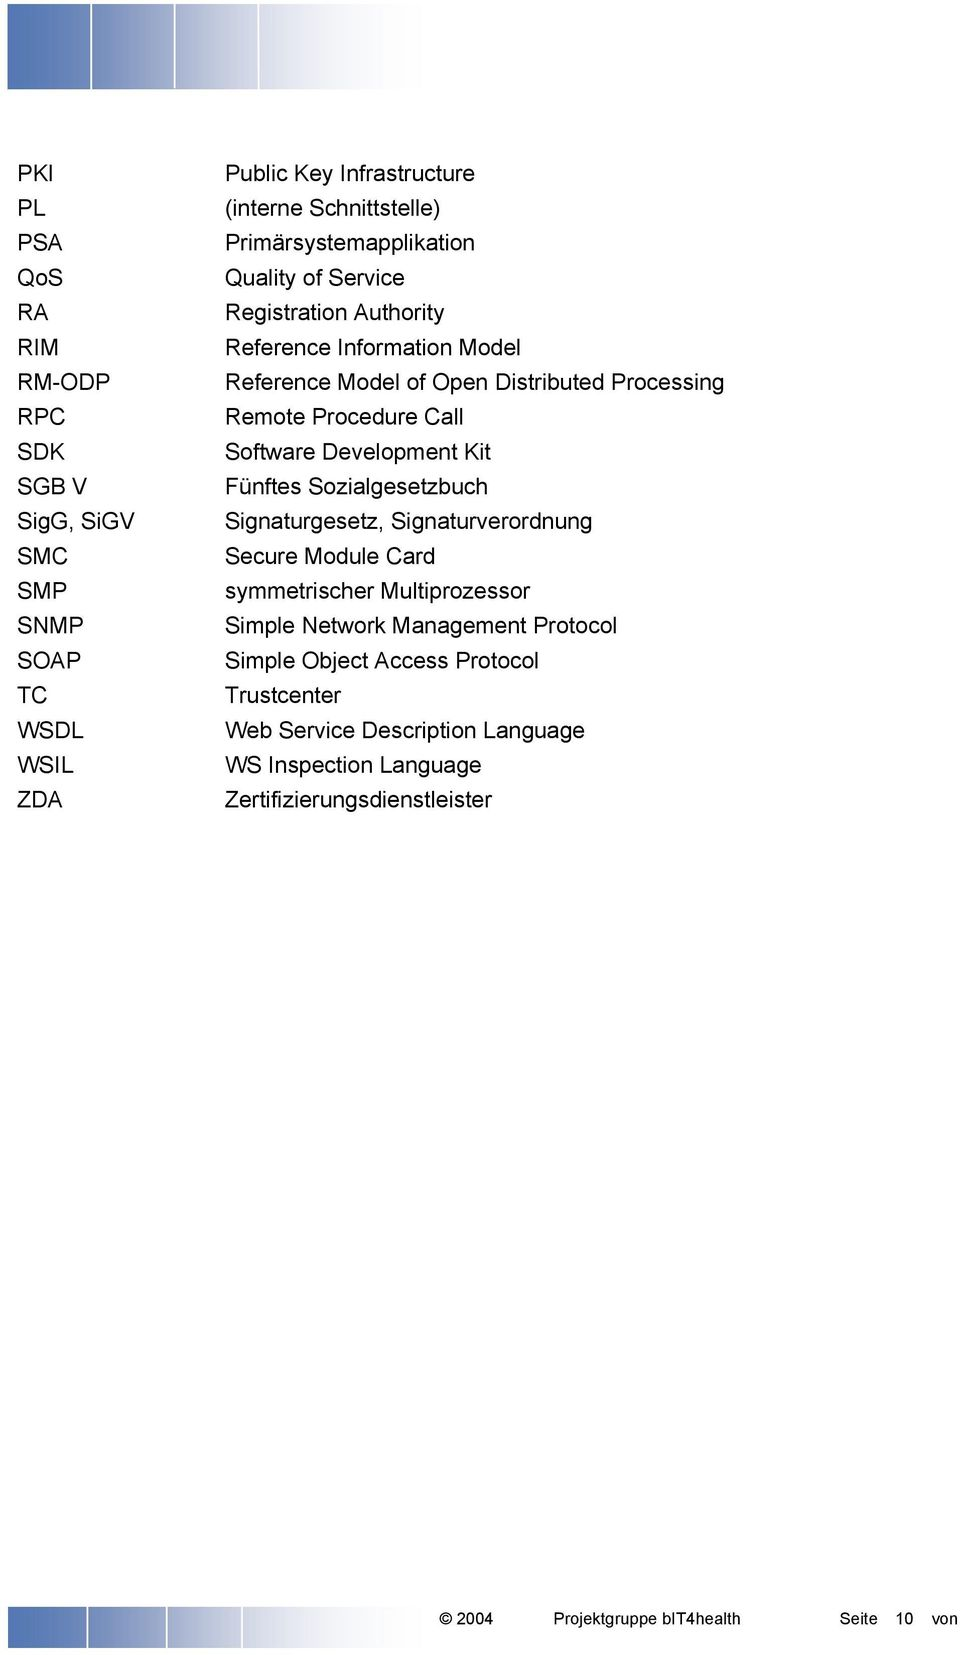 Call Software Development Kit Fünftes Sozialgesetzbuch Signaturgesetz, Signaturverordnung Secure Module Card symmetrischer Multiprozessor Simple Network